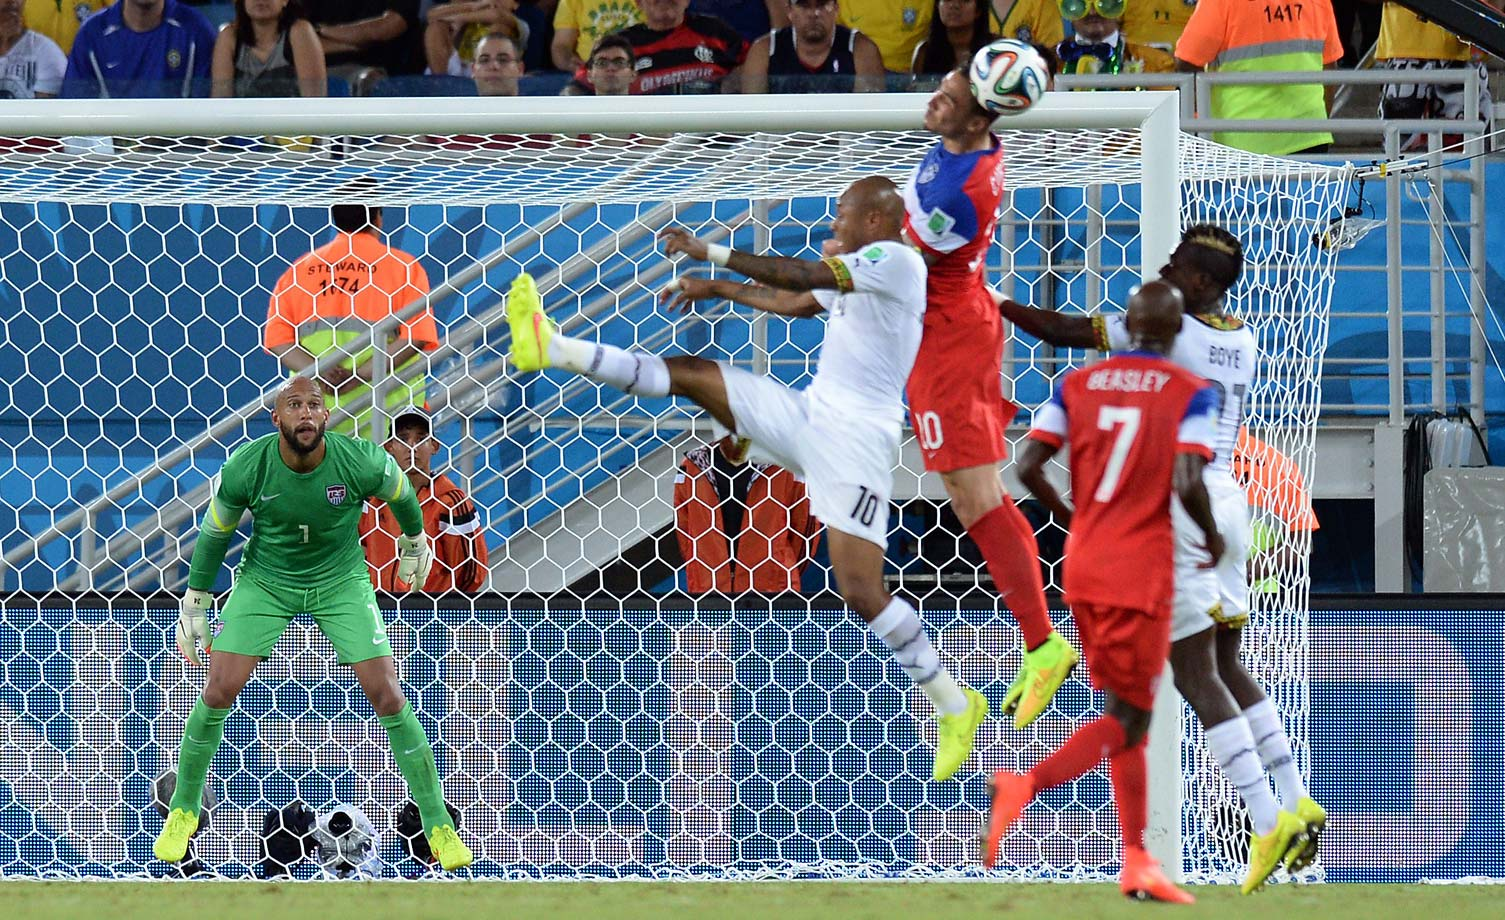 U.S. goalkeeper Tim Howard eyes the ball during the match against Ghana.